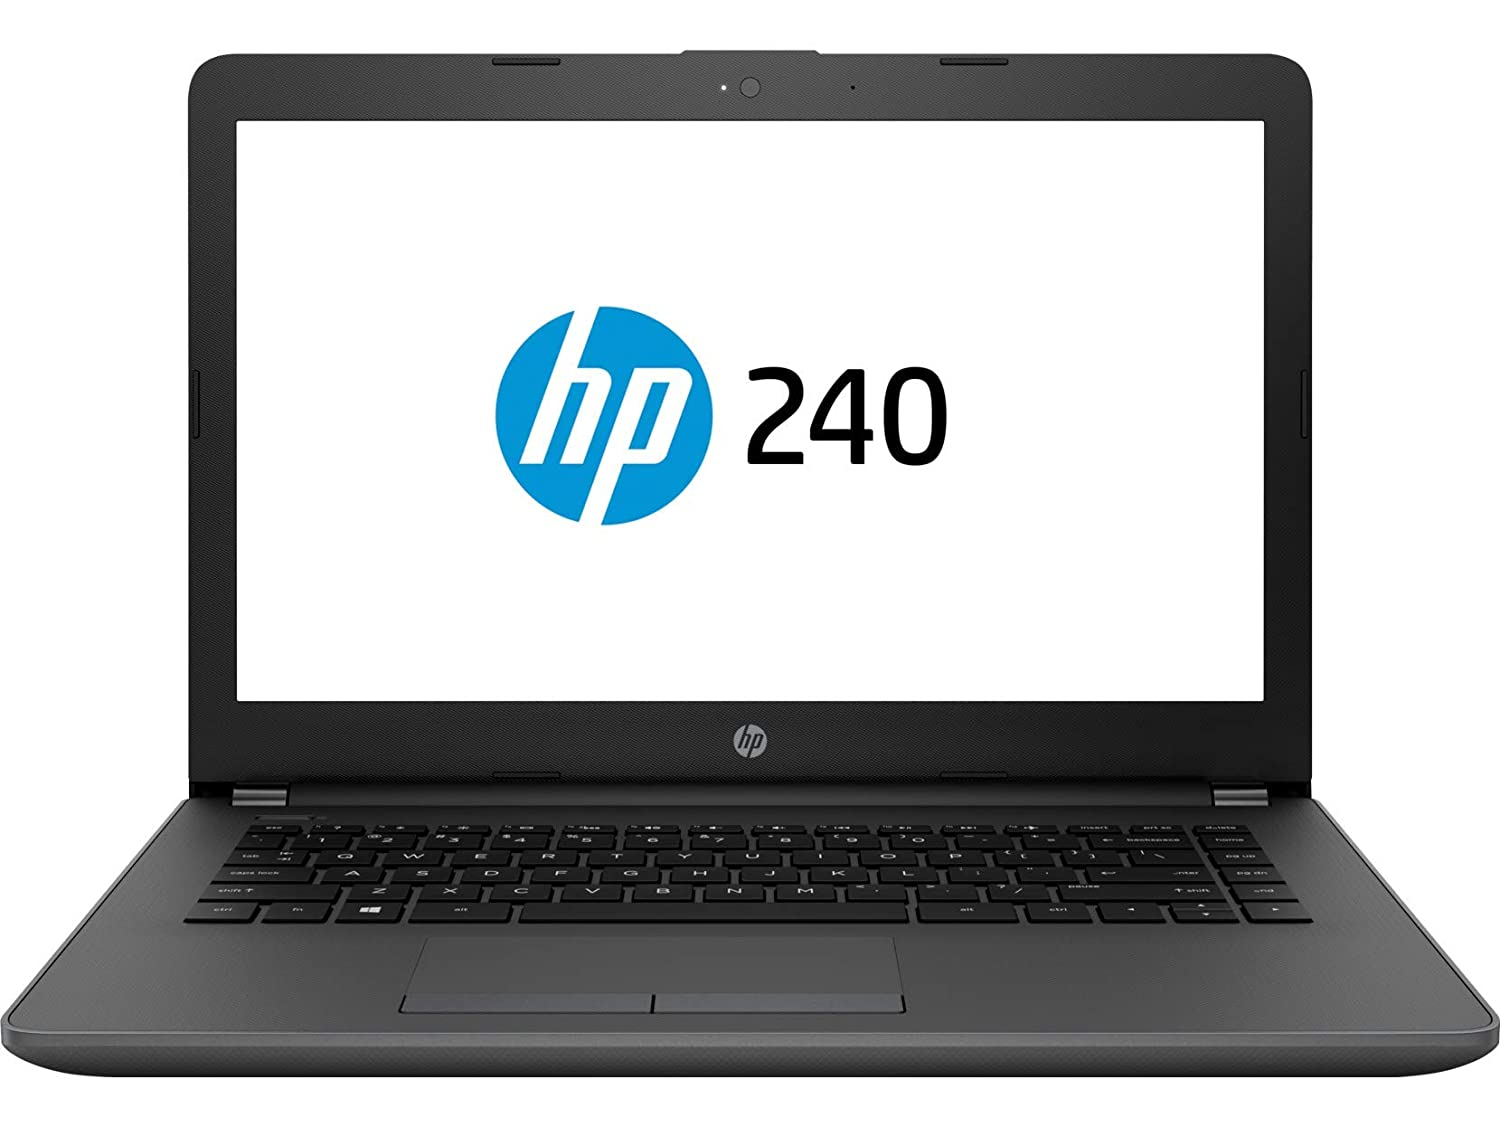 HP 245 Laptop under 20k